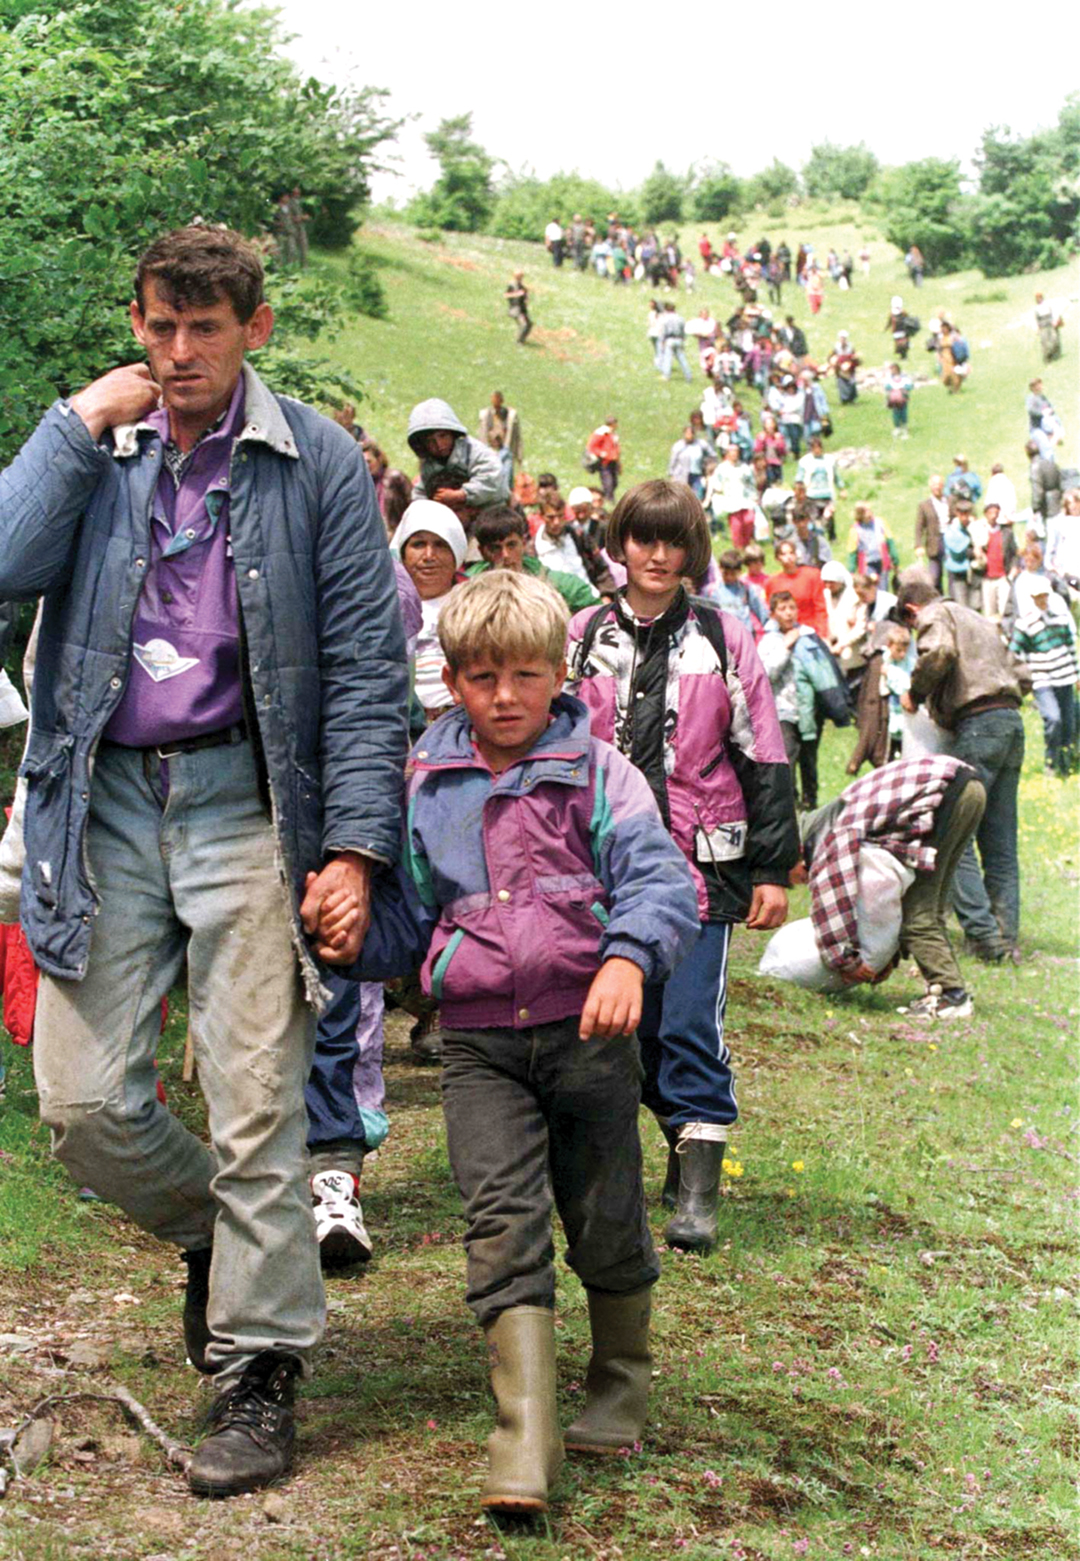 Kosovar refugees flood into Albania in June 1998, fleeing ethnic violence amid clashes between Serb security forces and Kosovar guerrillas. REUTERS